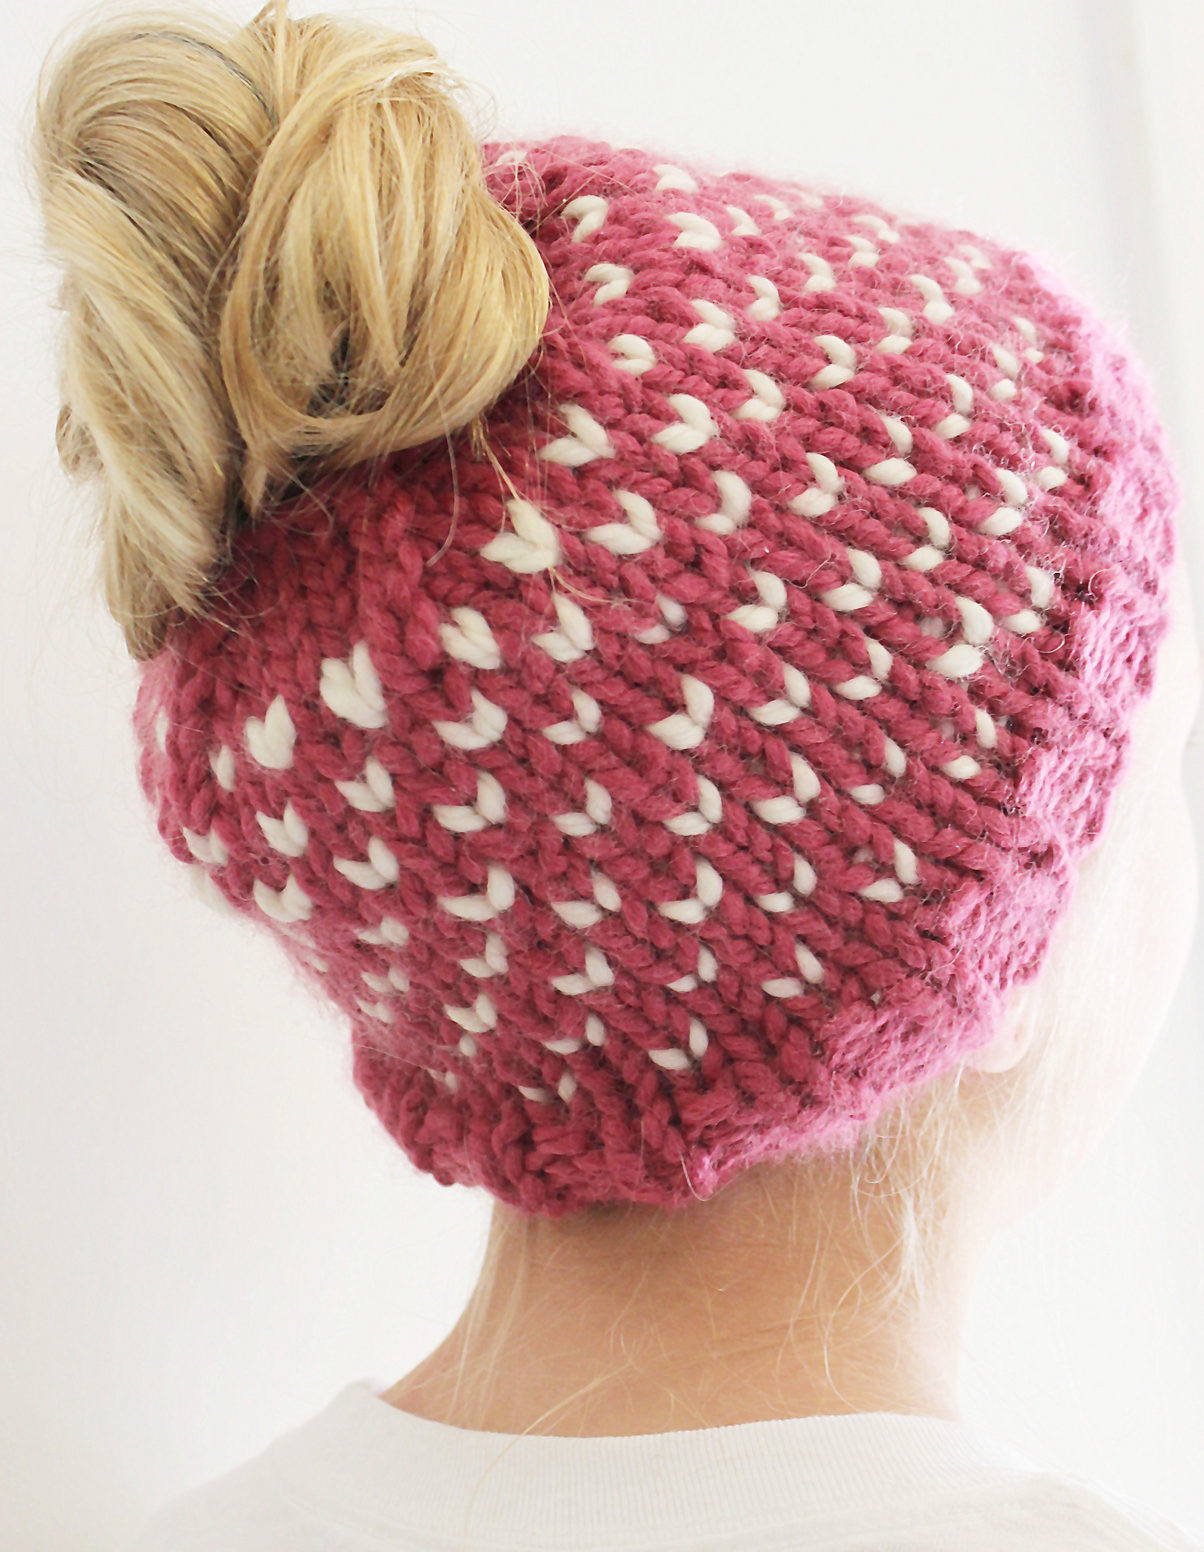 Inspirational Messy Bun and Ponytail Hat Knitting Patterns Bun Hat Knitting Pattern Of Amazing 40 Ideas Bun Hat Knitting Pattern